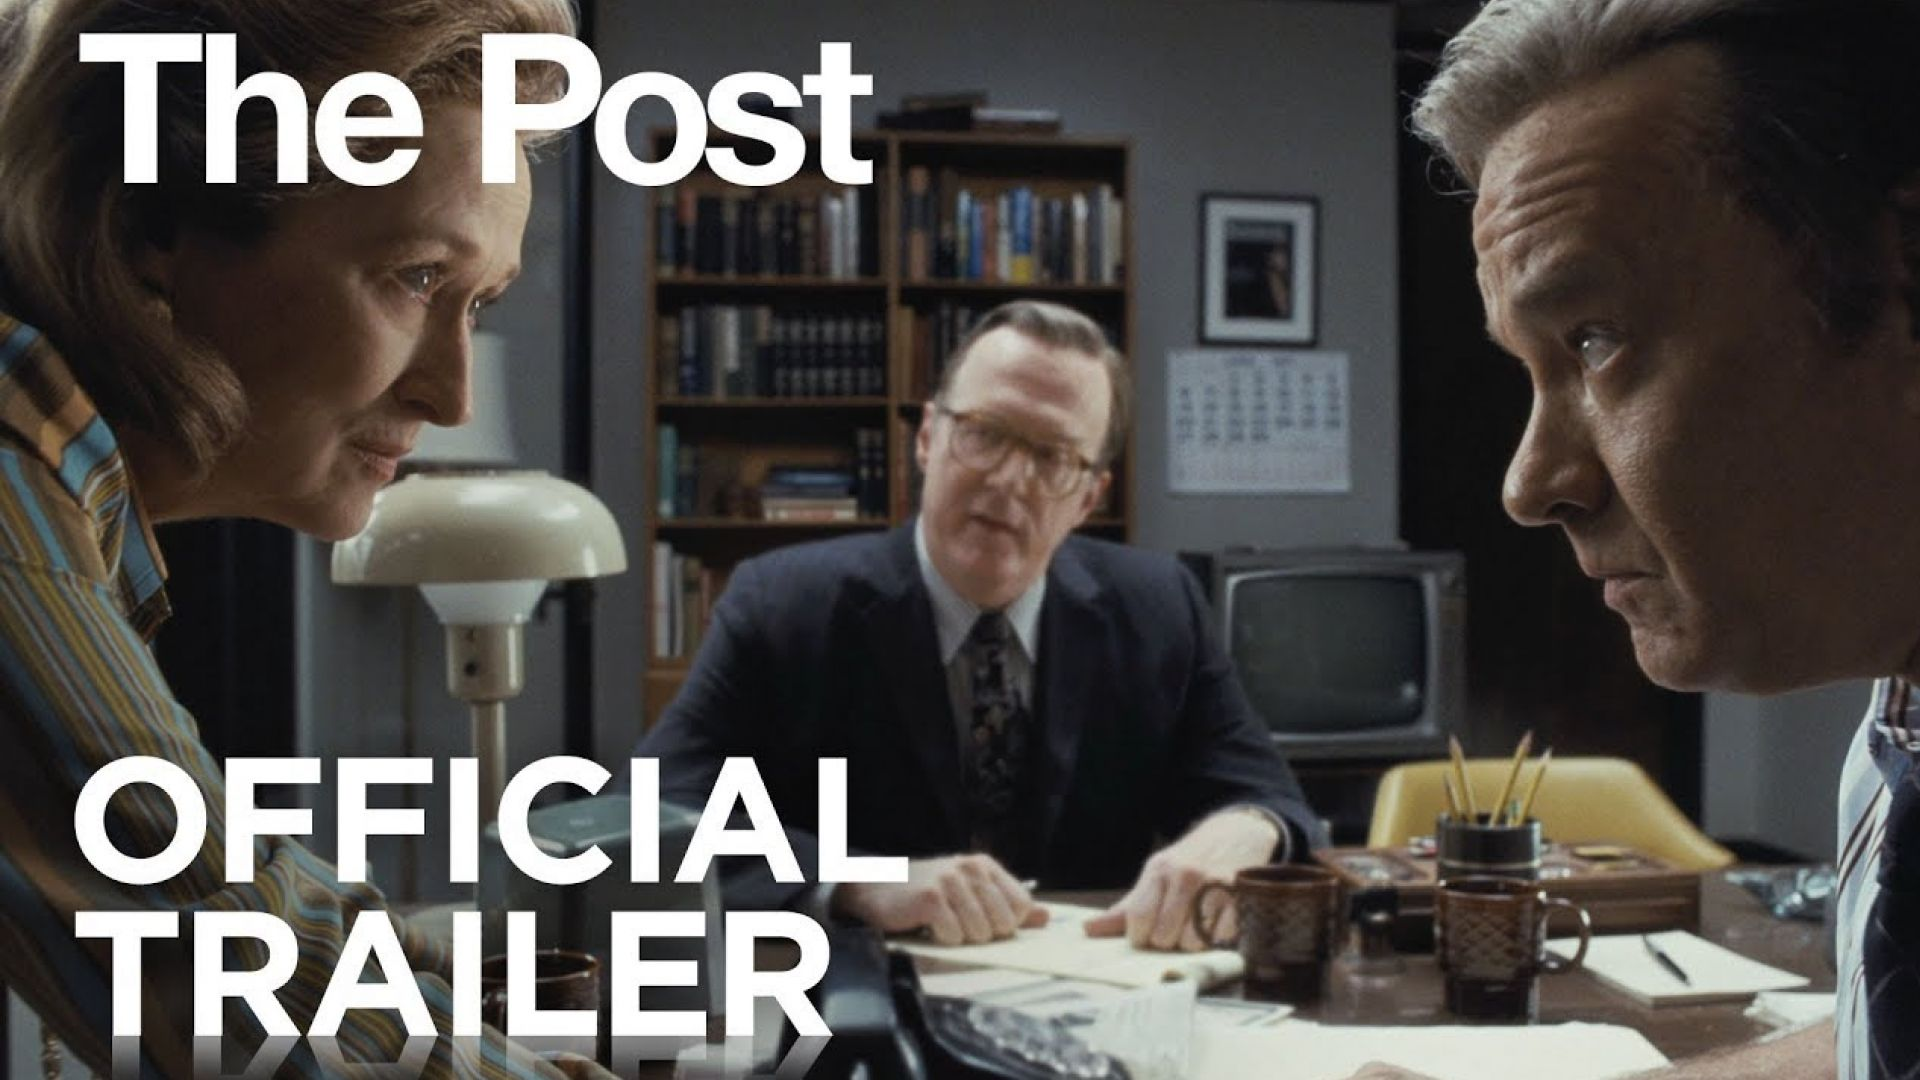 'The Post' Trailer - 20th Century Fox